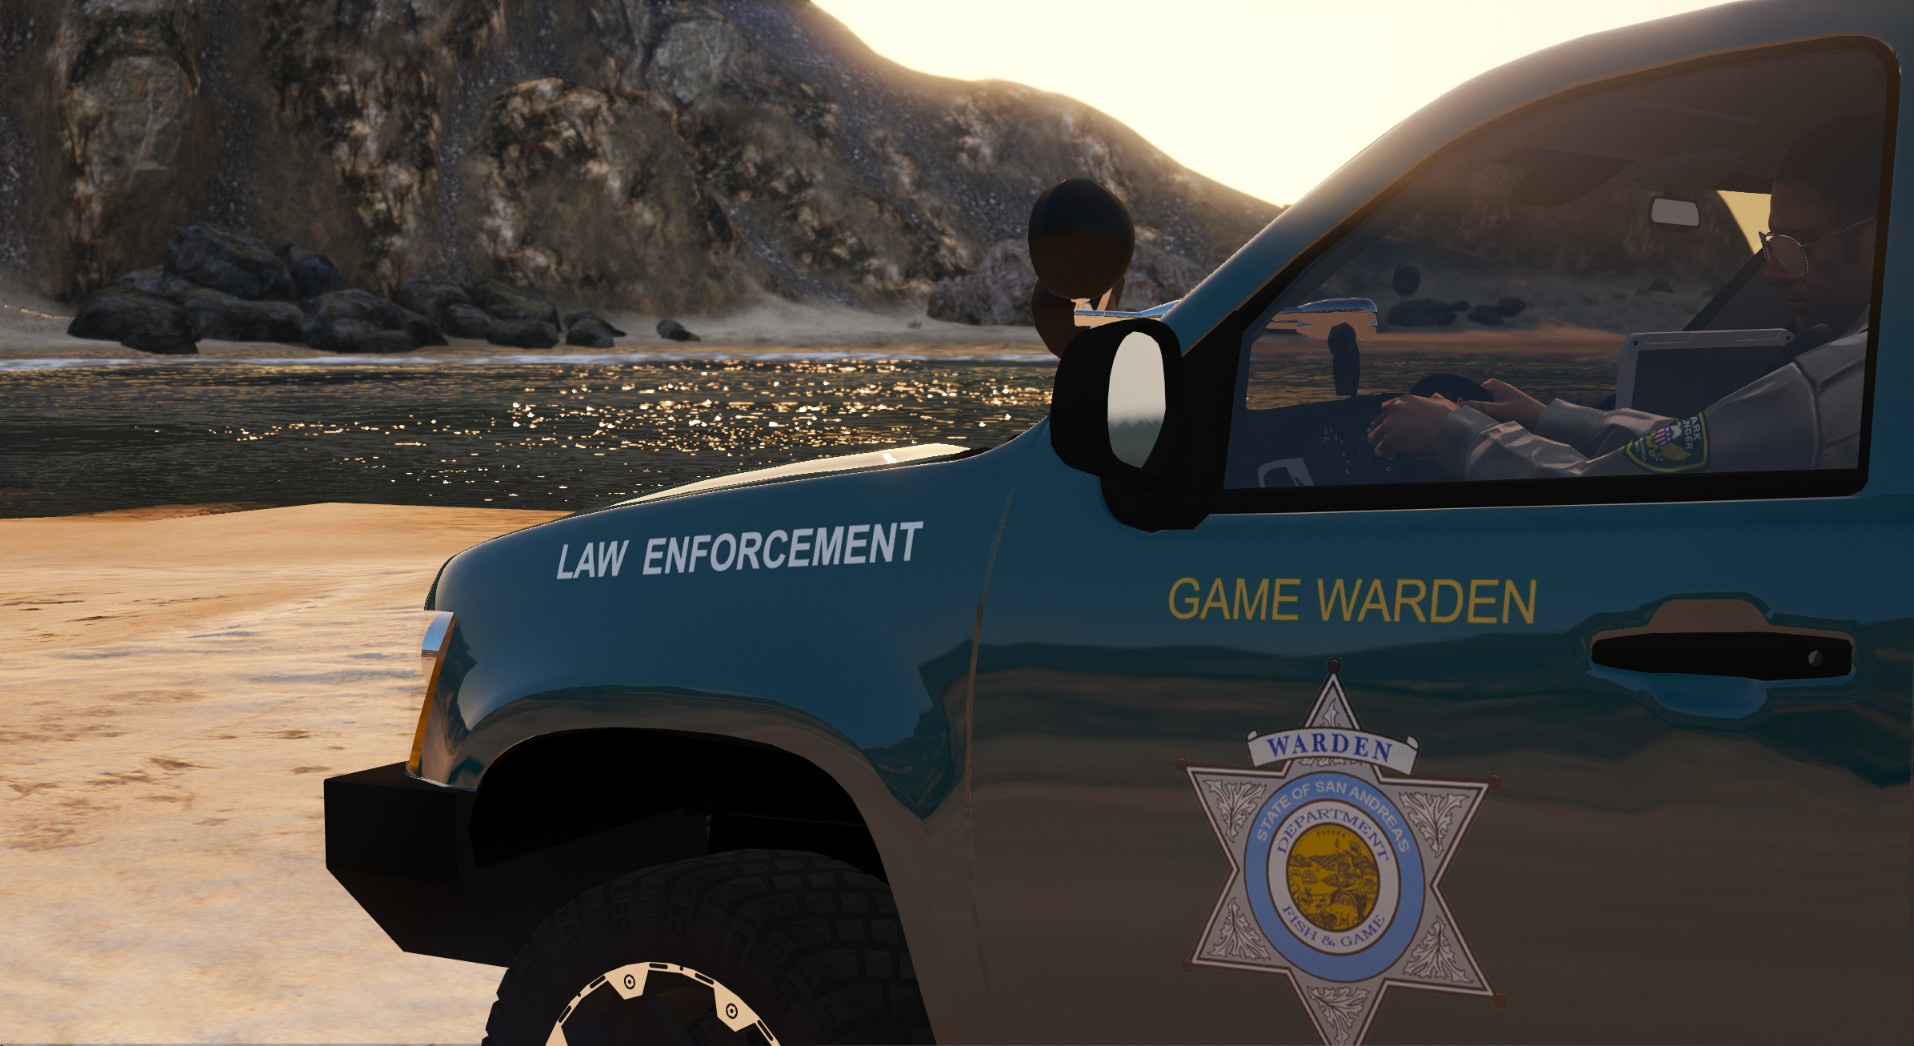 State of San Andreas Game Warden Skin Pack (8 Vehicles) - GTA5-Mods com